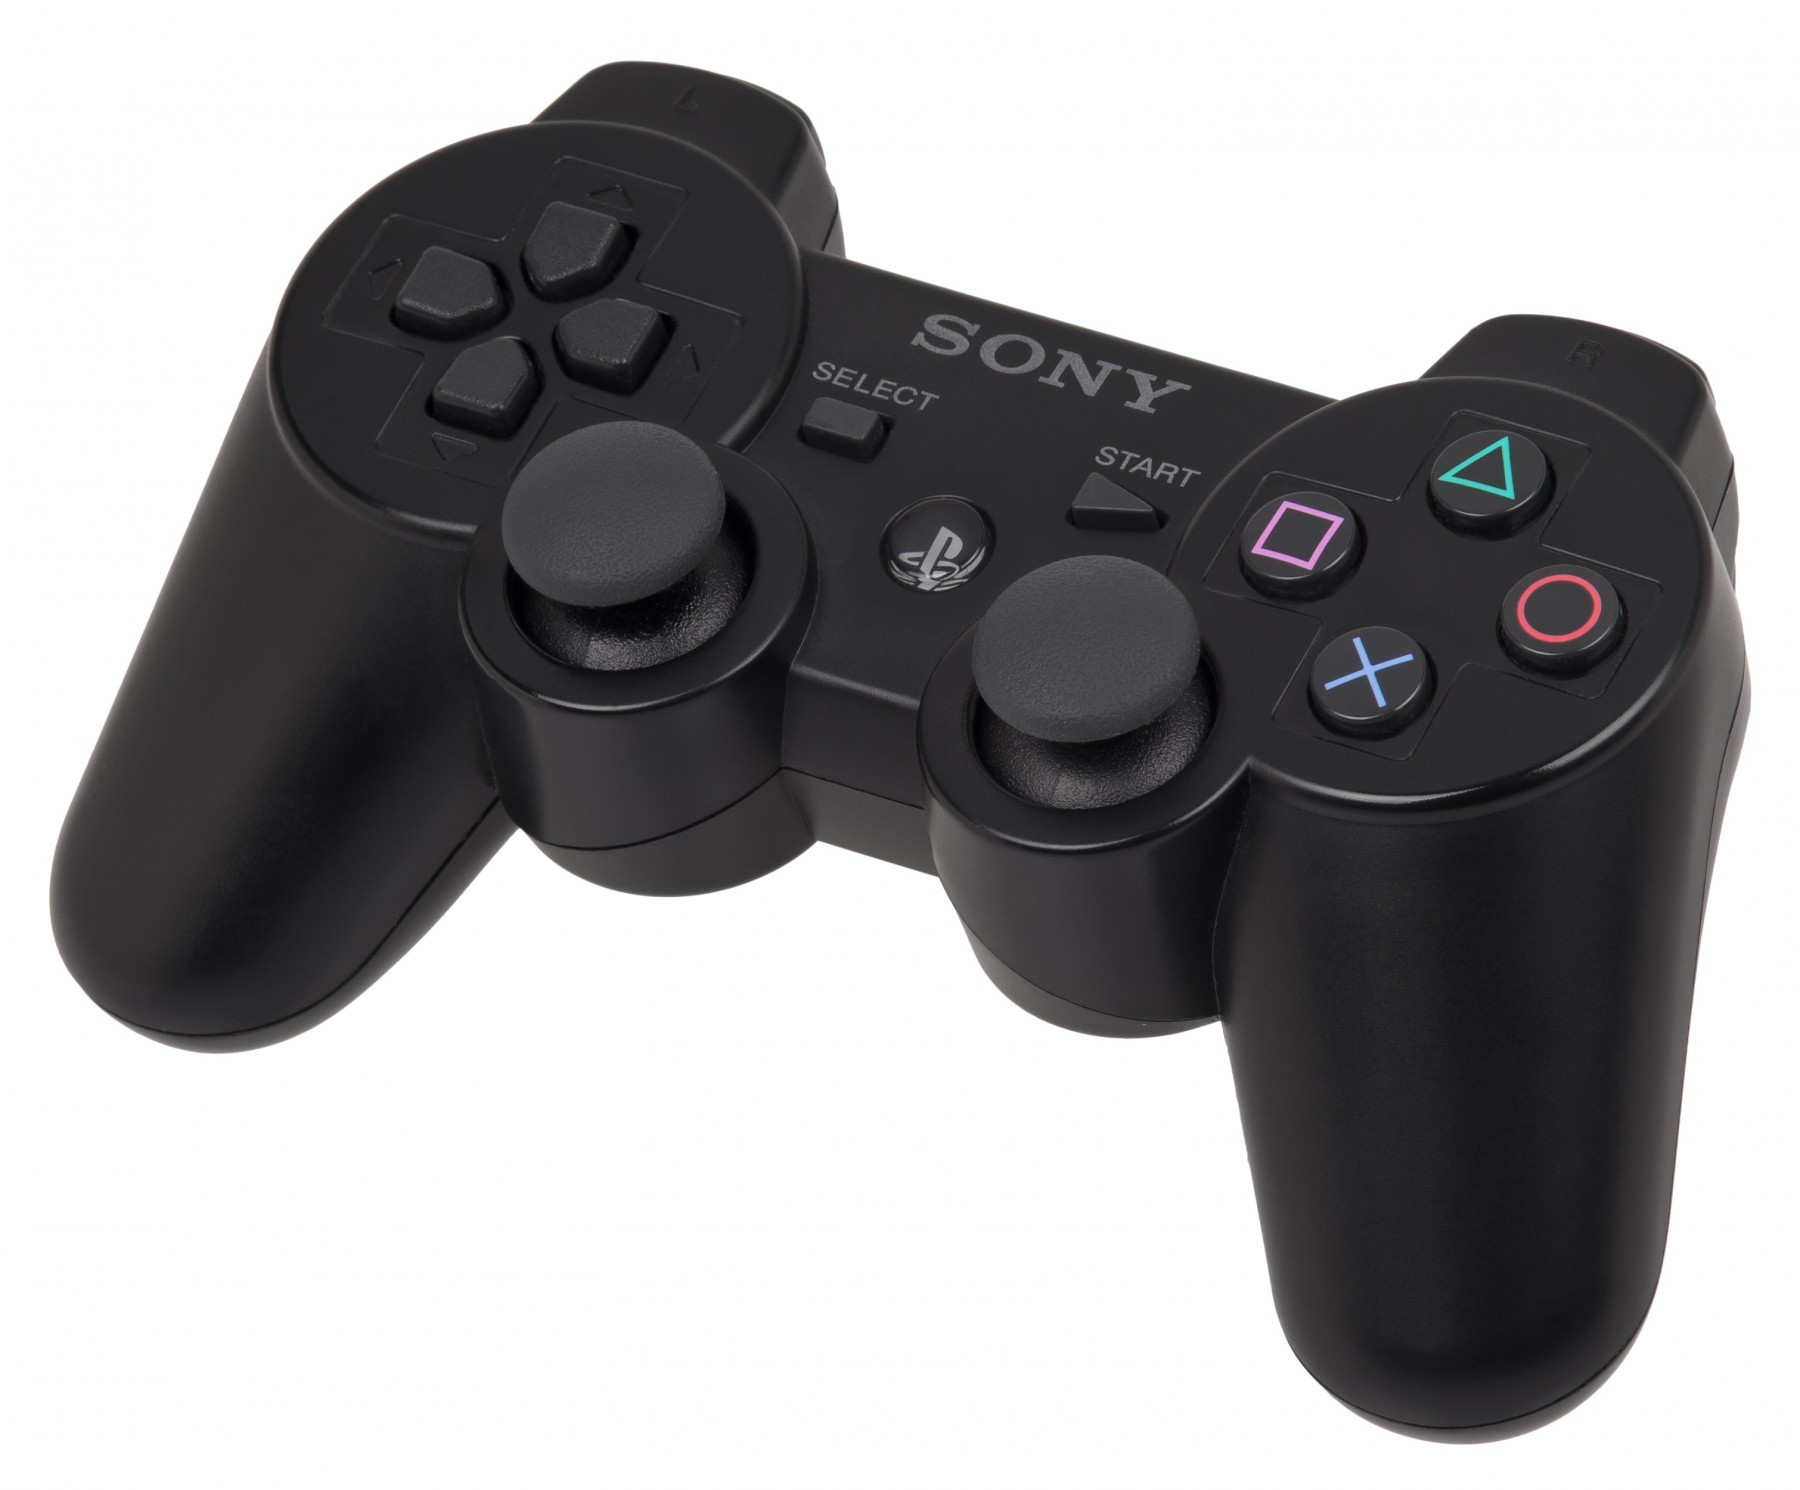 DualShock 3 SIXAXIS Wireless Bluetooth Controller Black